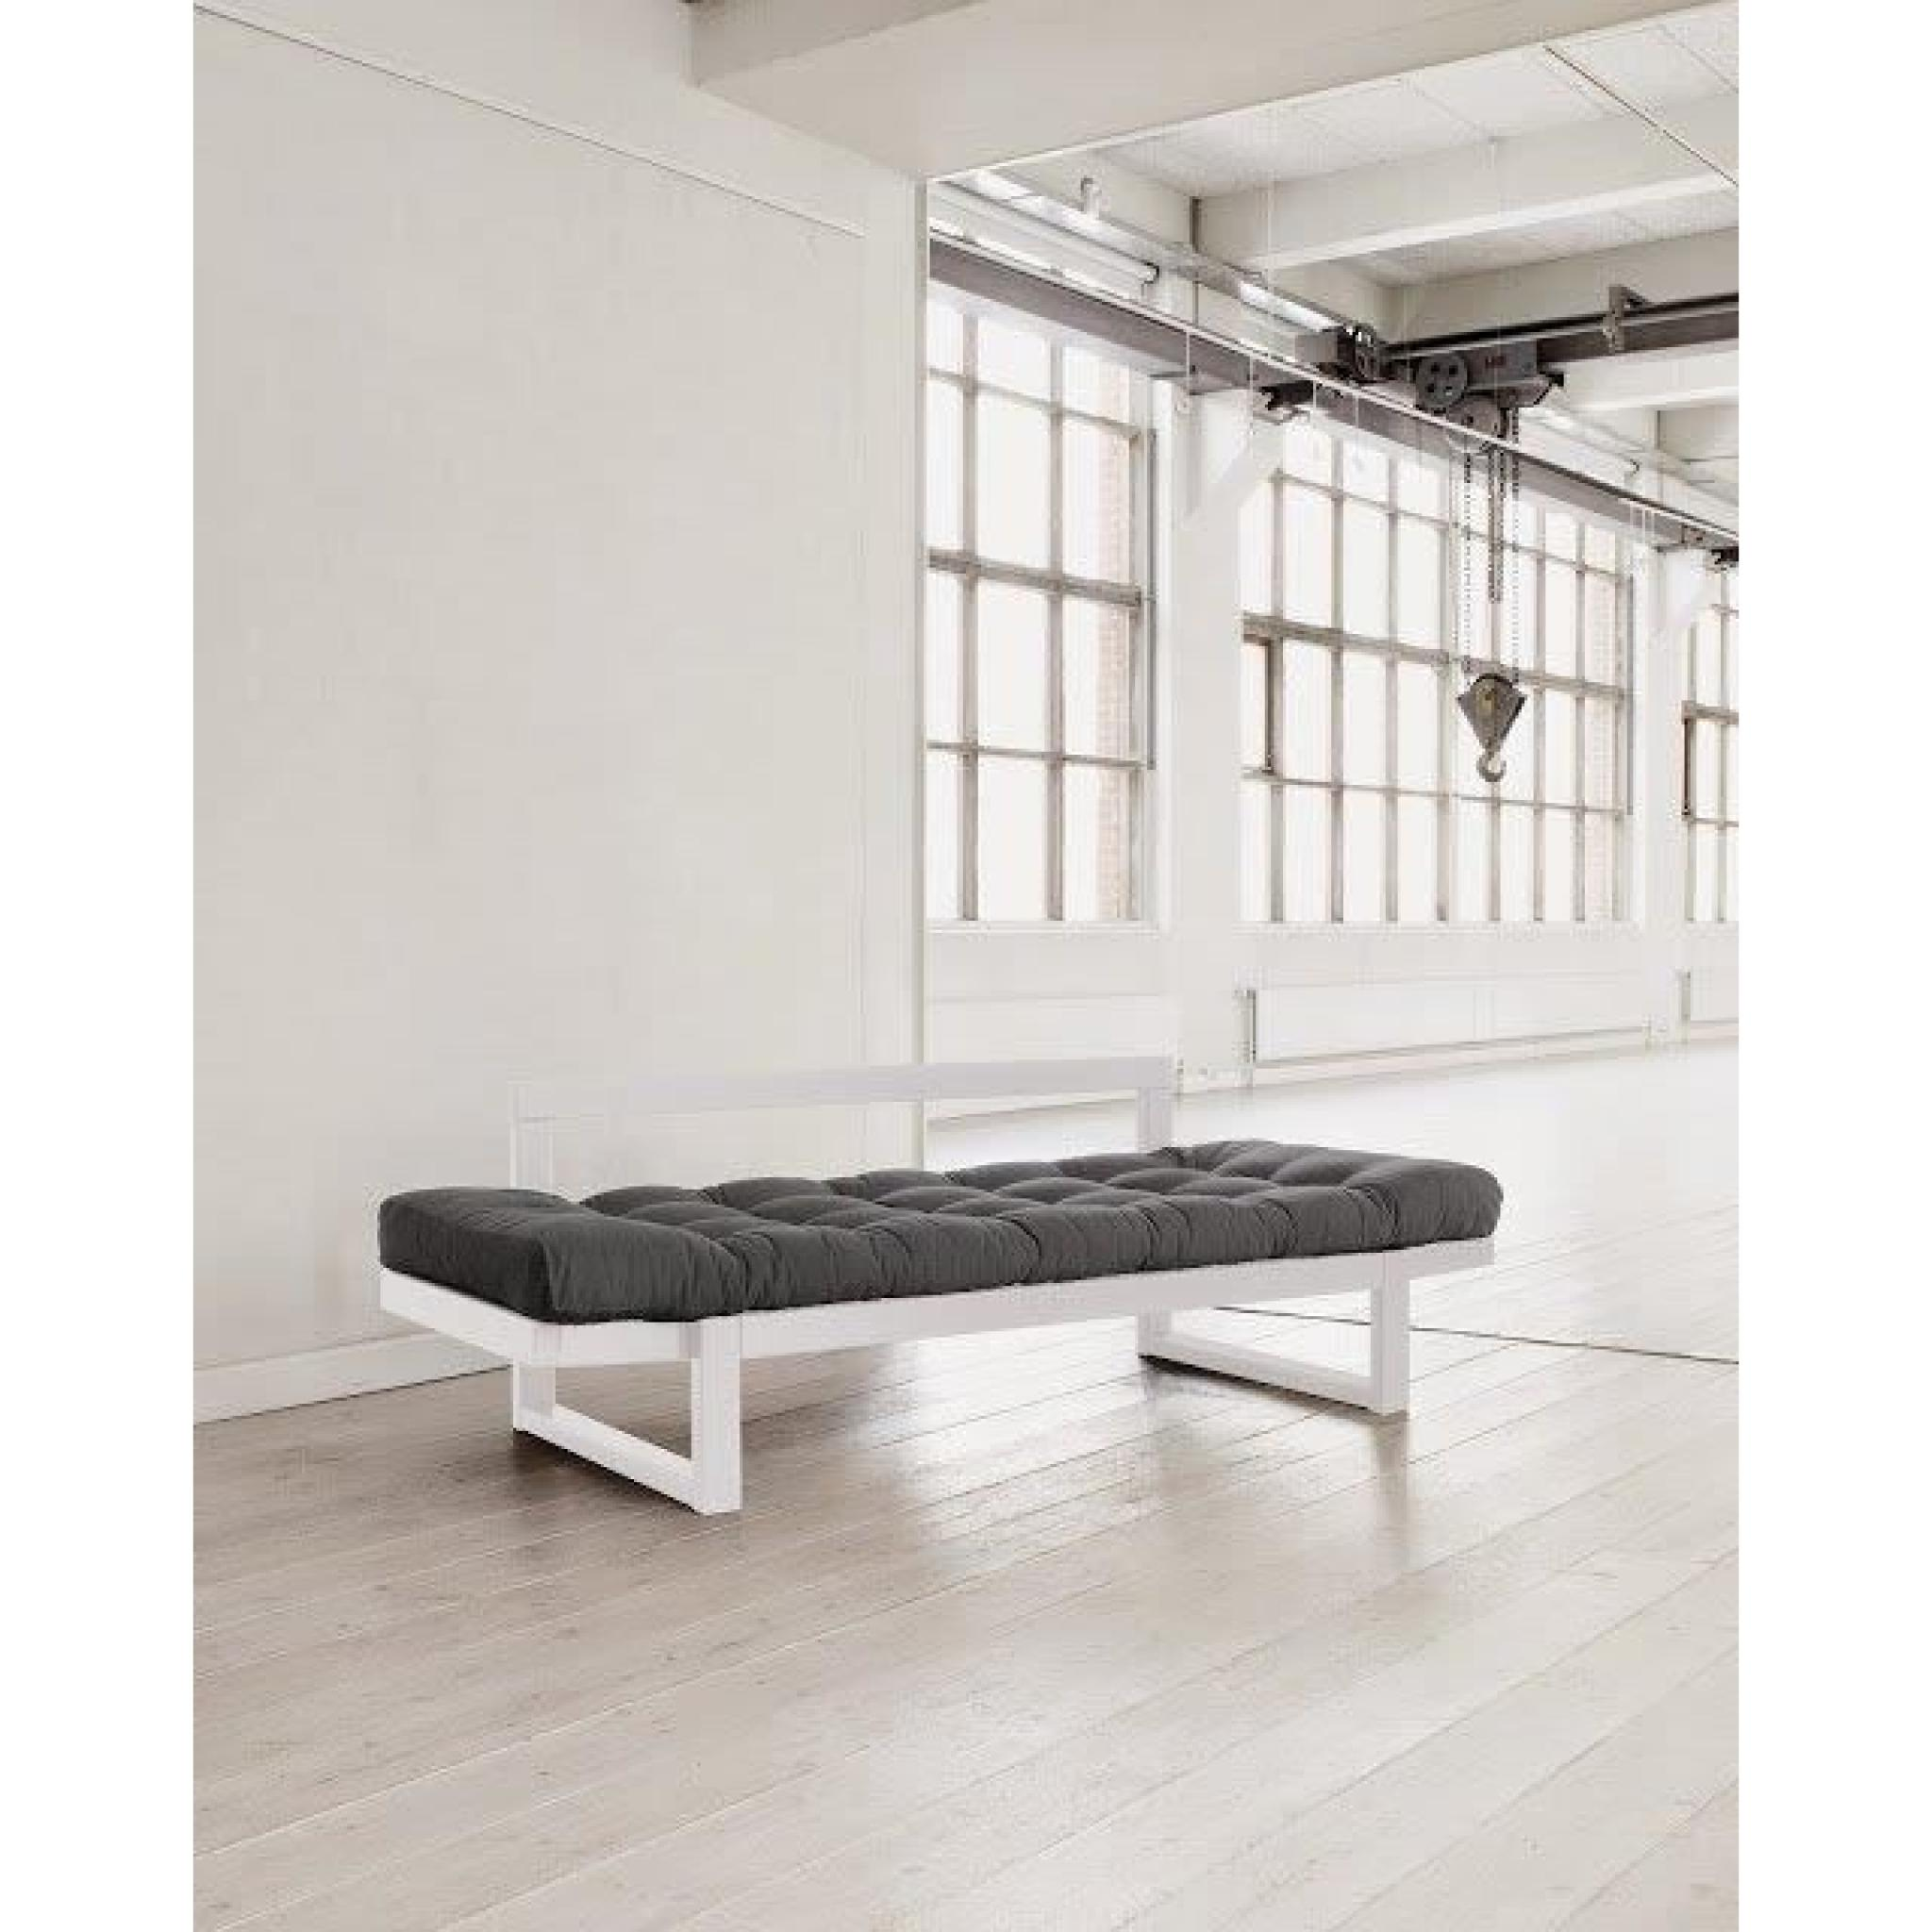 Banquette m ridienne blanche futon gris edge couchage 75 for Banquette meridienne design